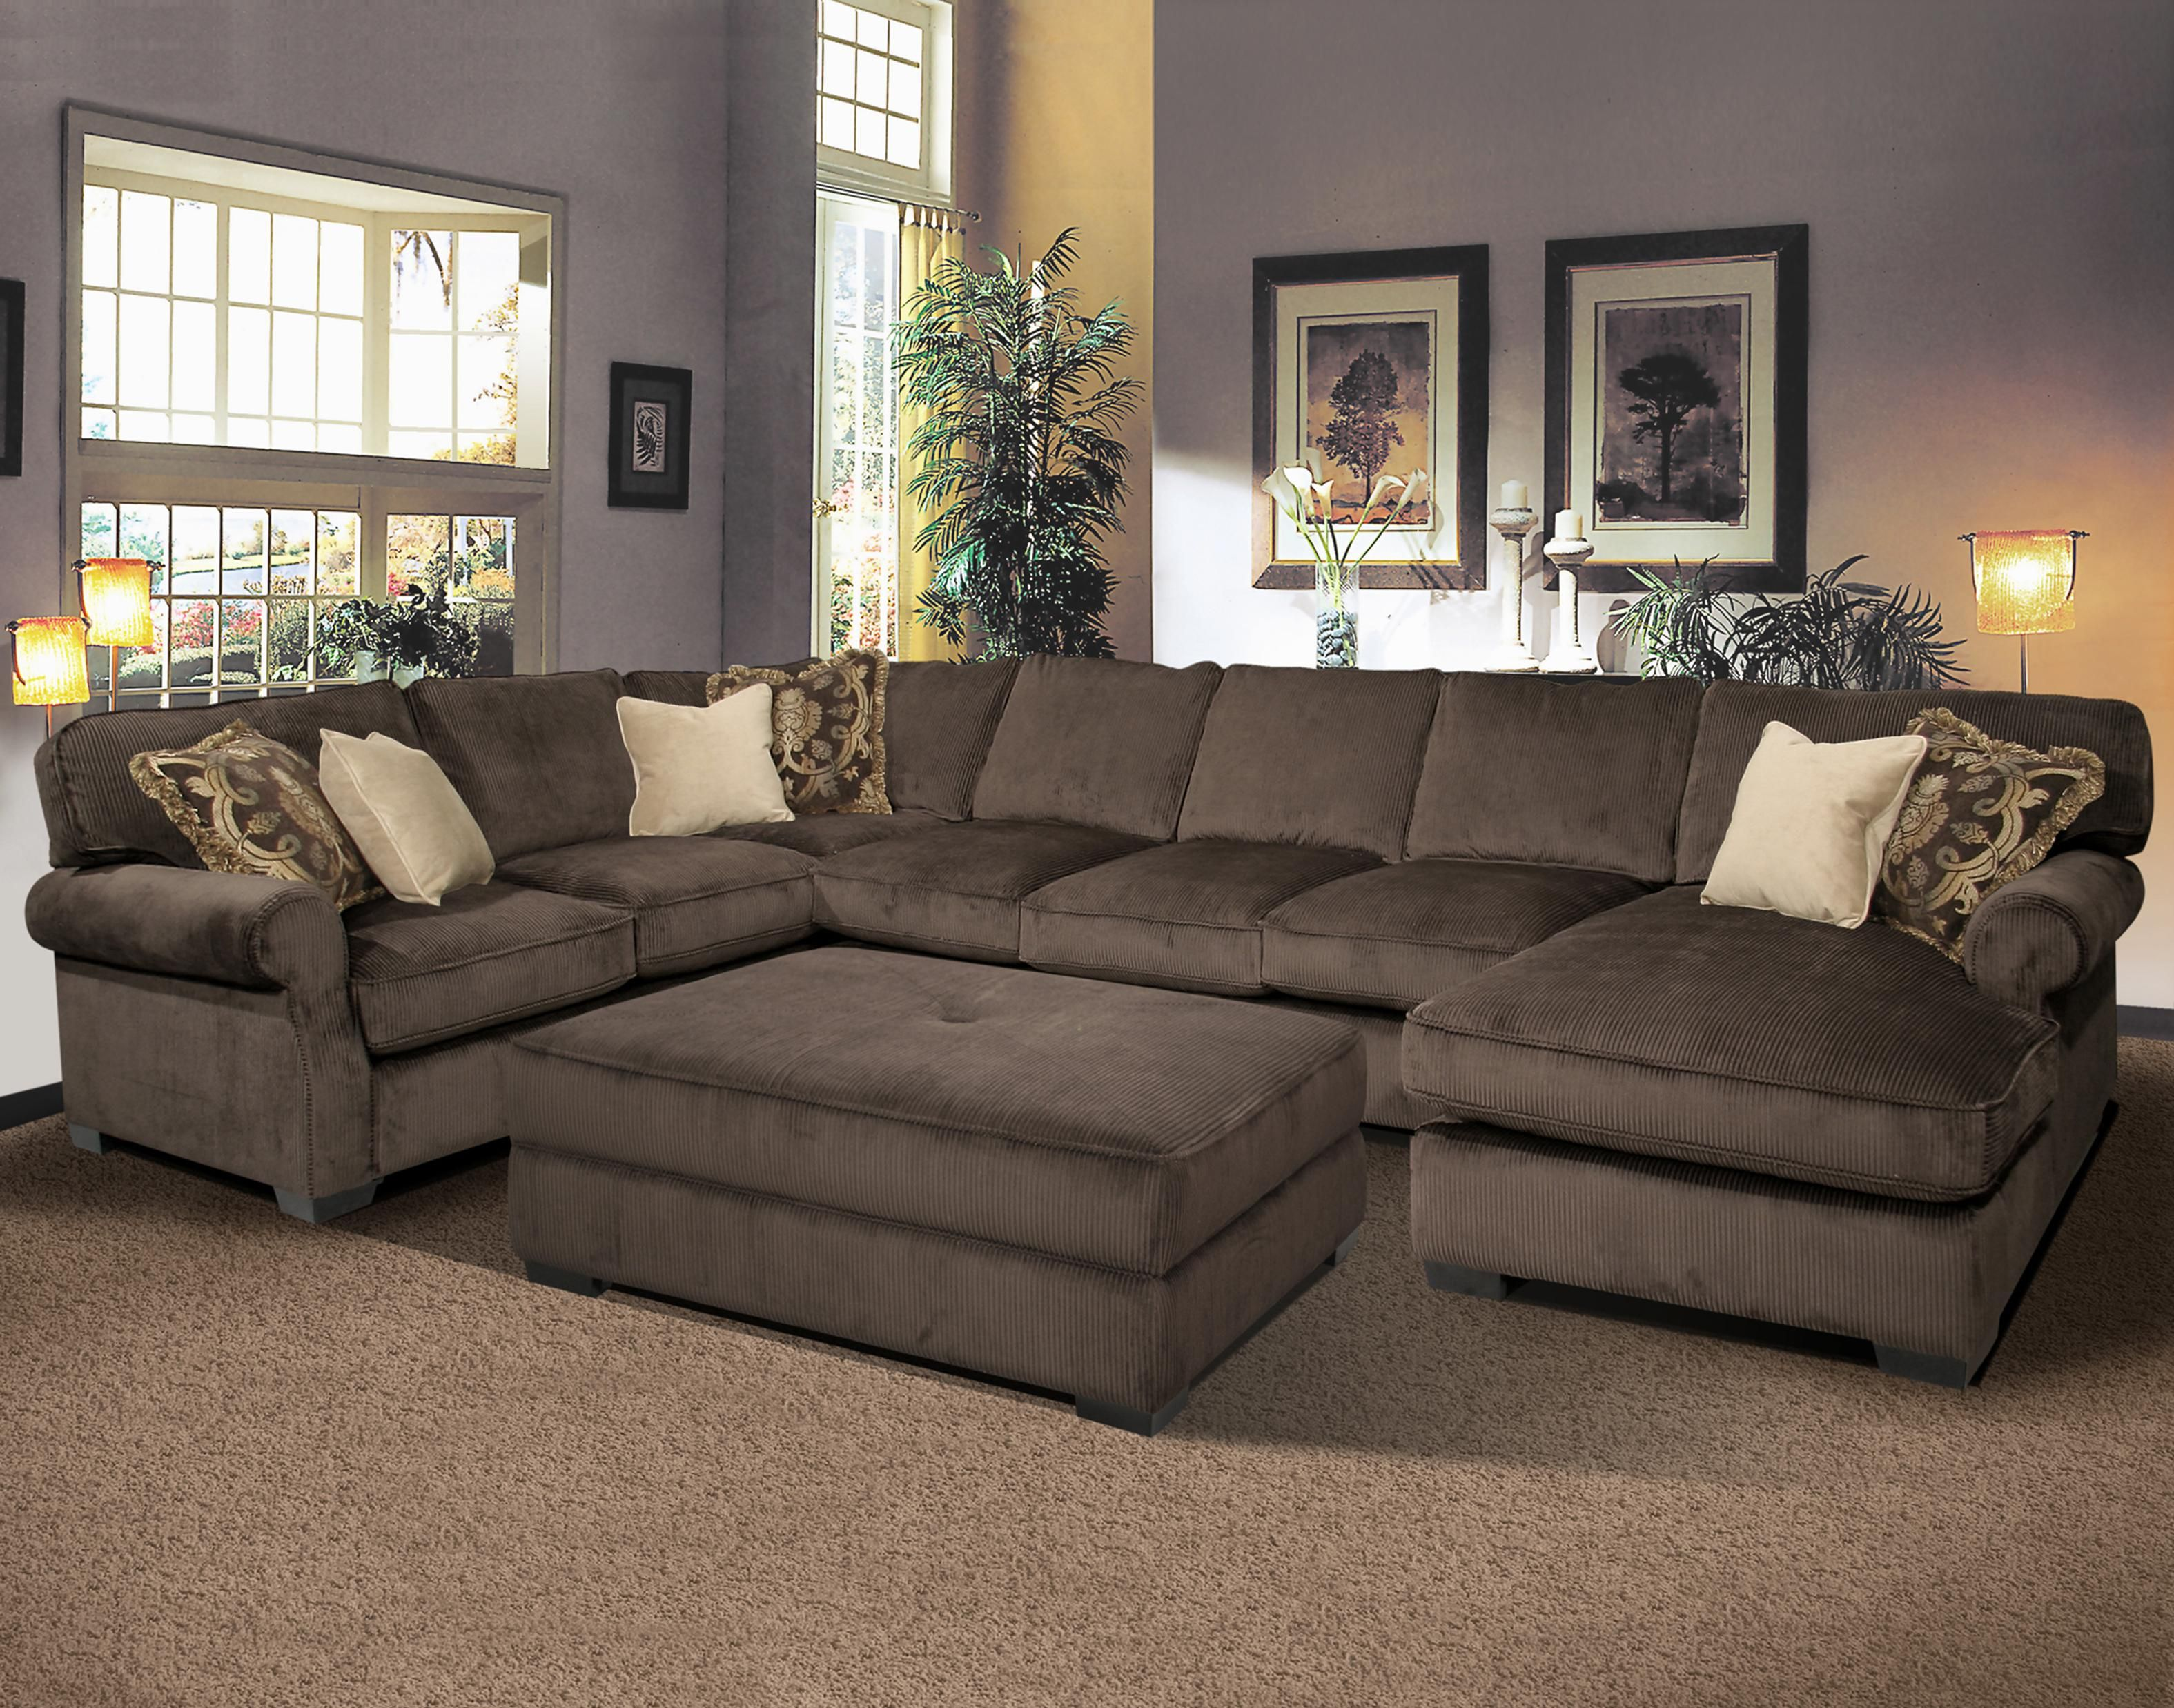 Best Big And Comfy Grand Island Large 7 Seat Sectional Sofa 400 x 300